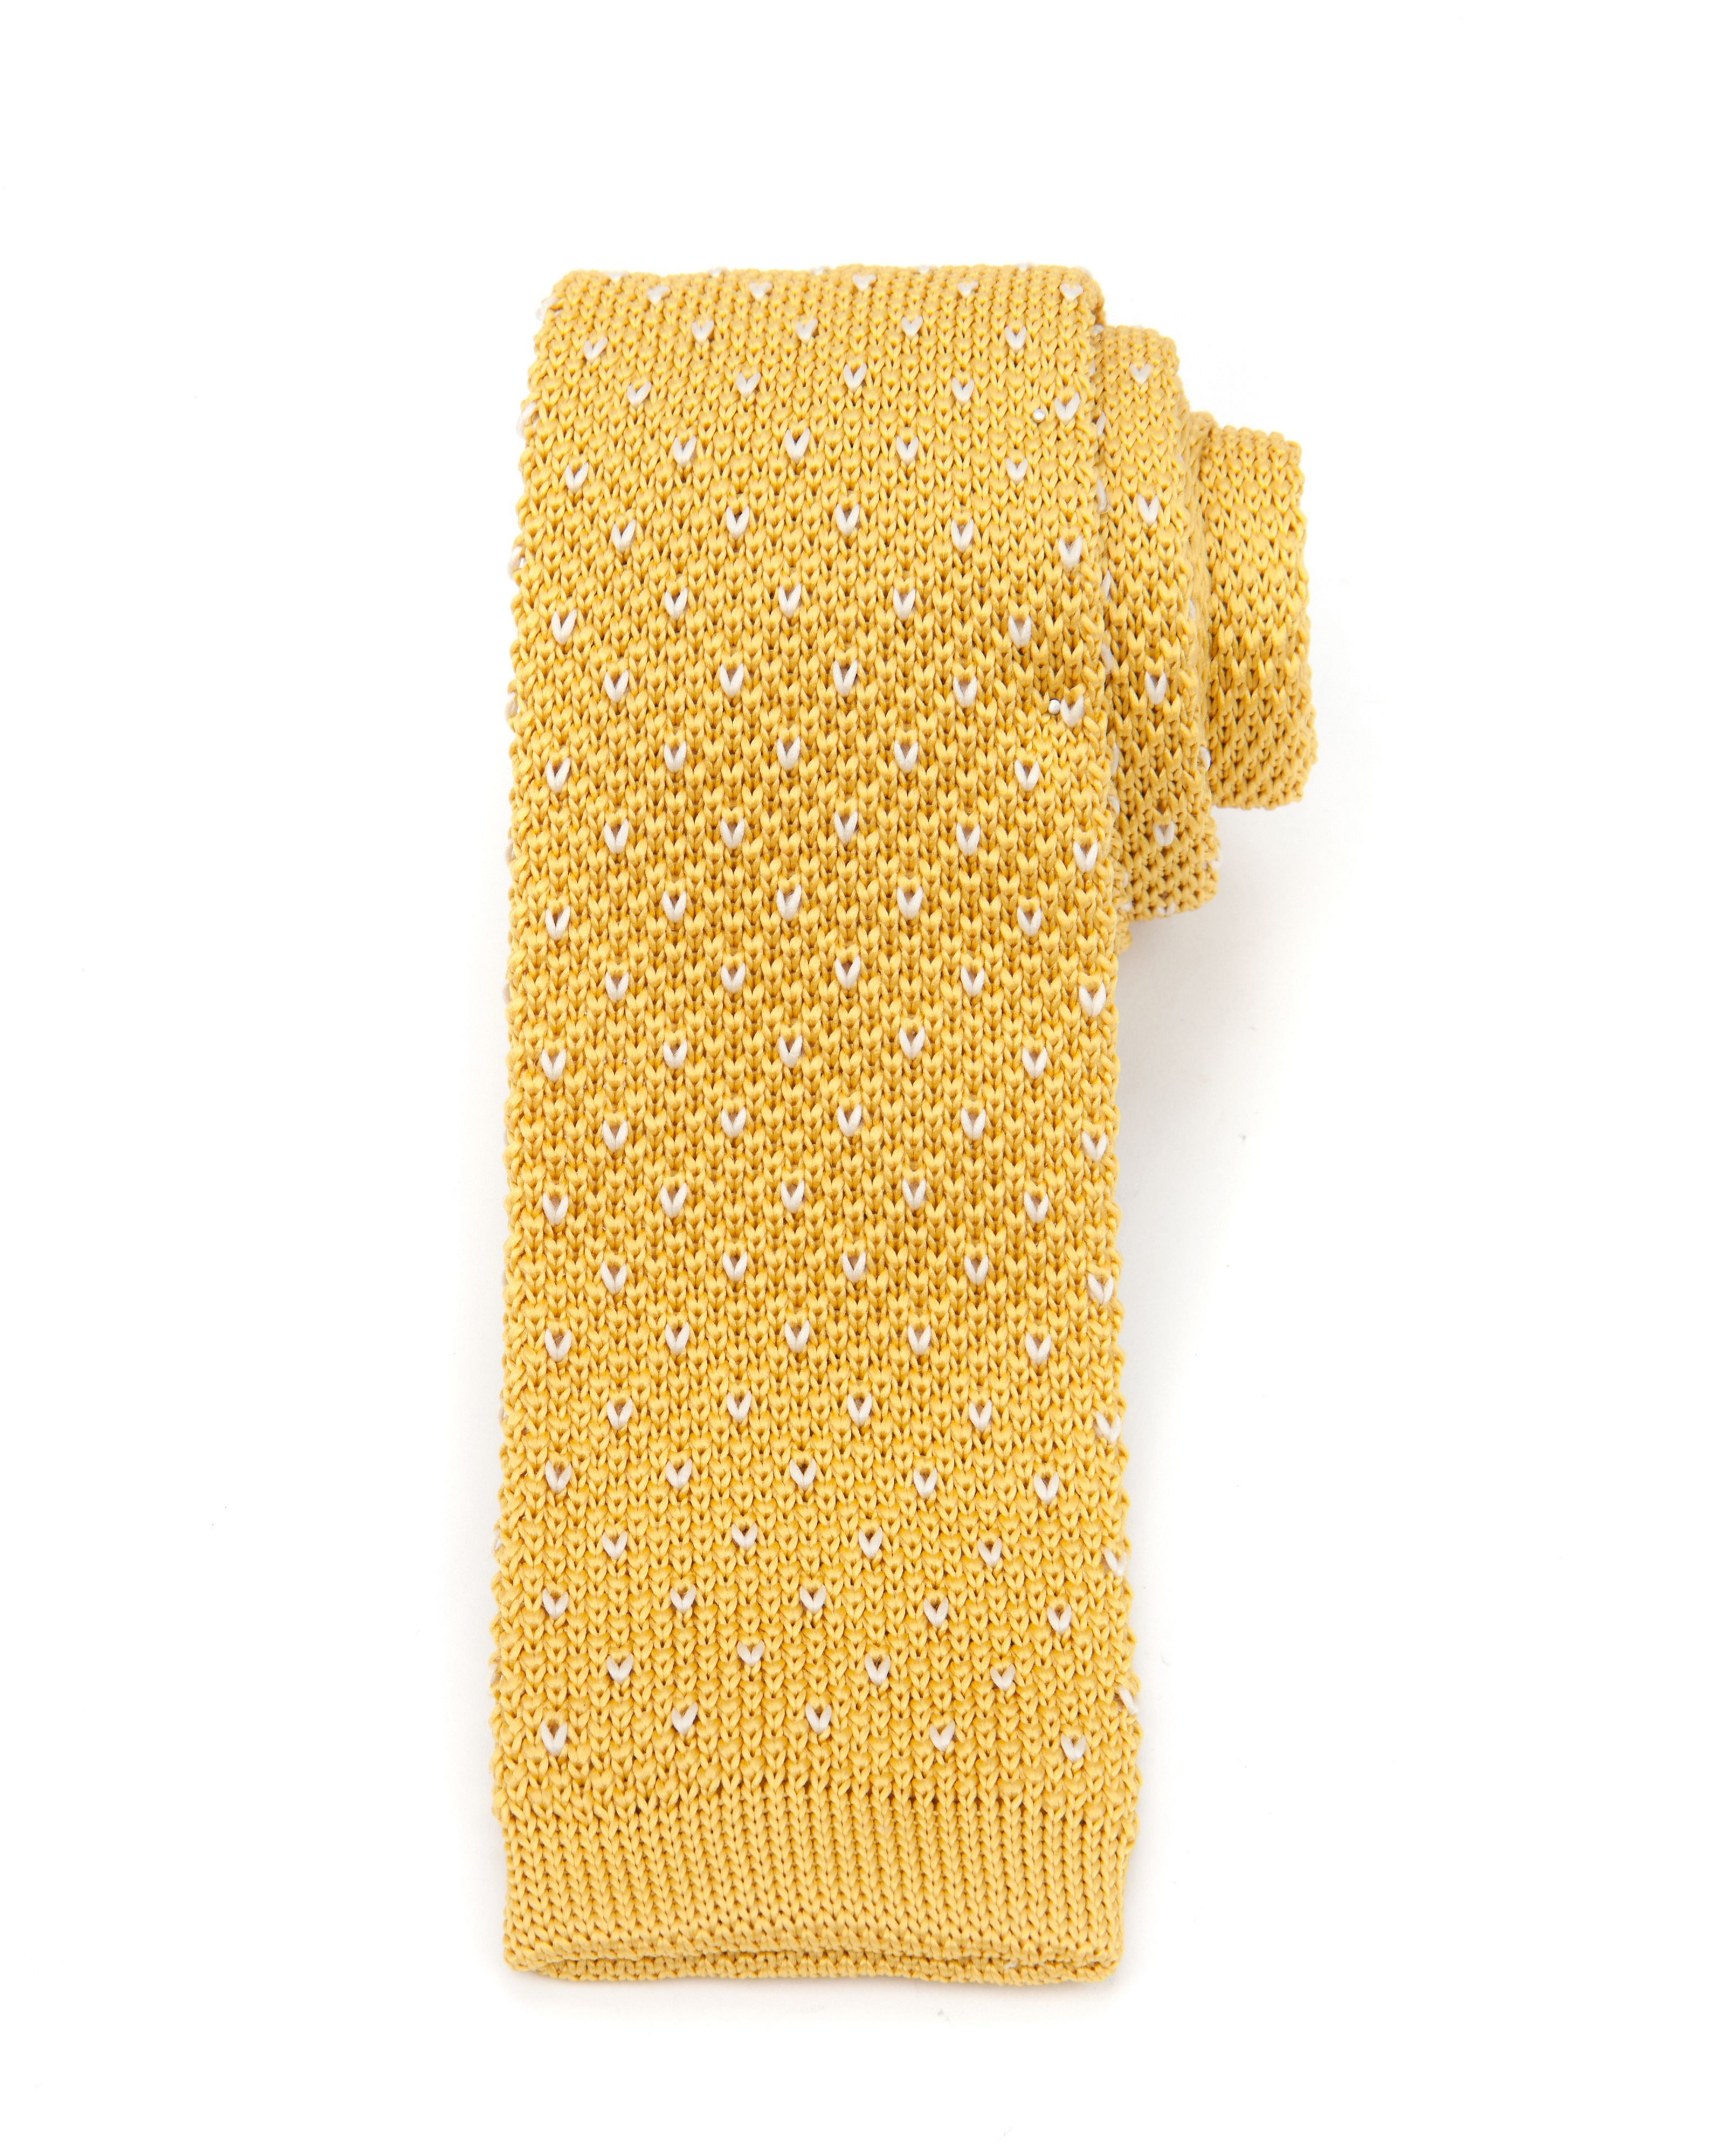 Pickles knitted tie